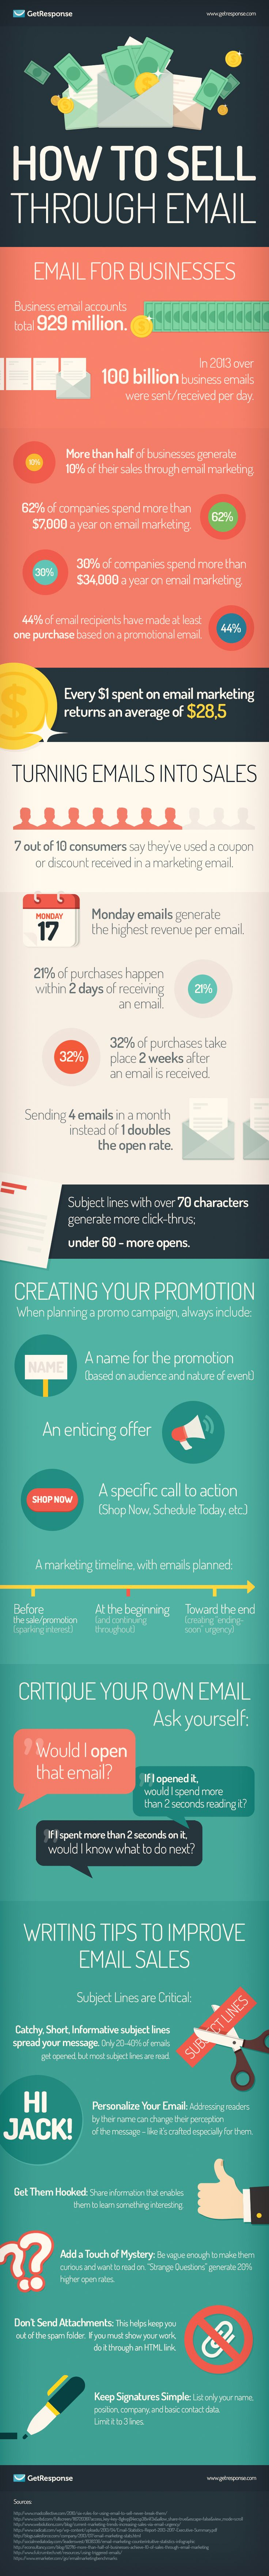 How to Sell Through Email www.socialmediamamma.com Email marketing Infographic http://www.branvisioninc.com